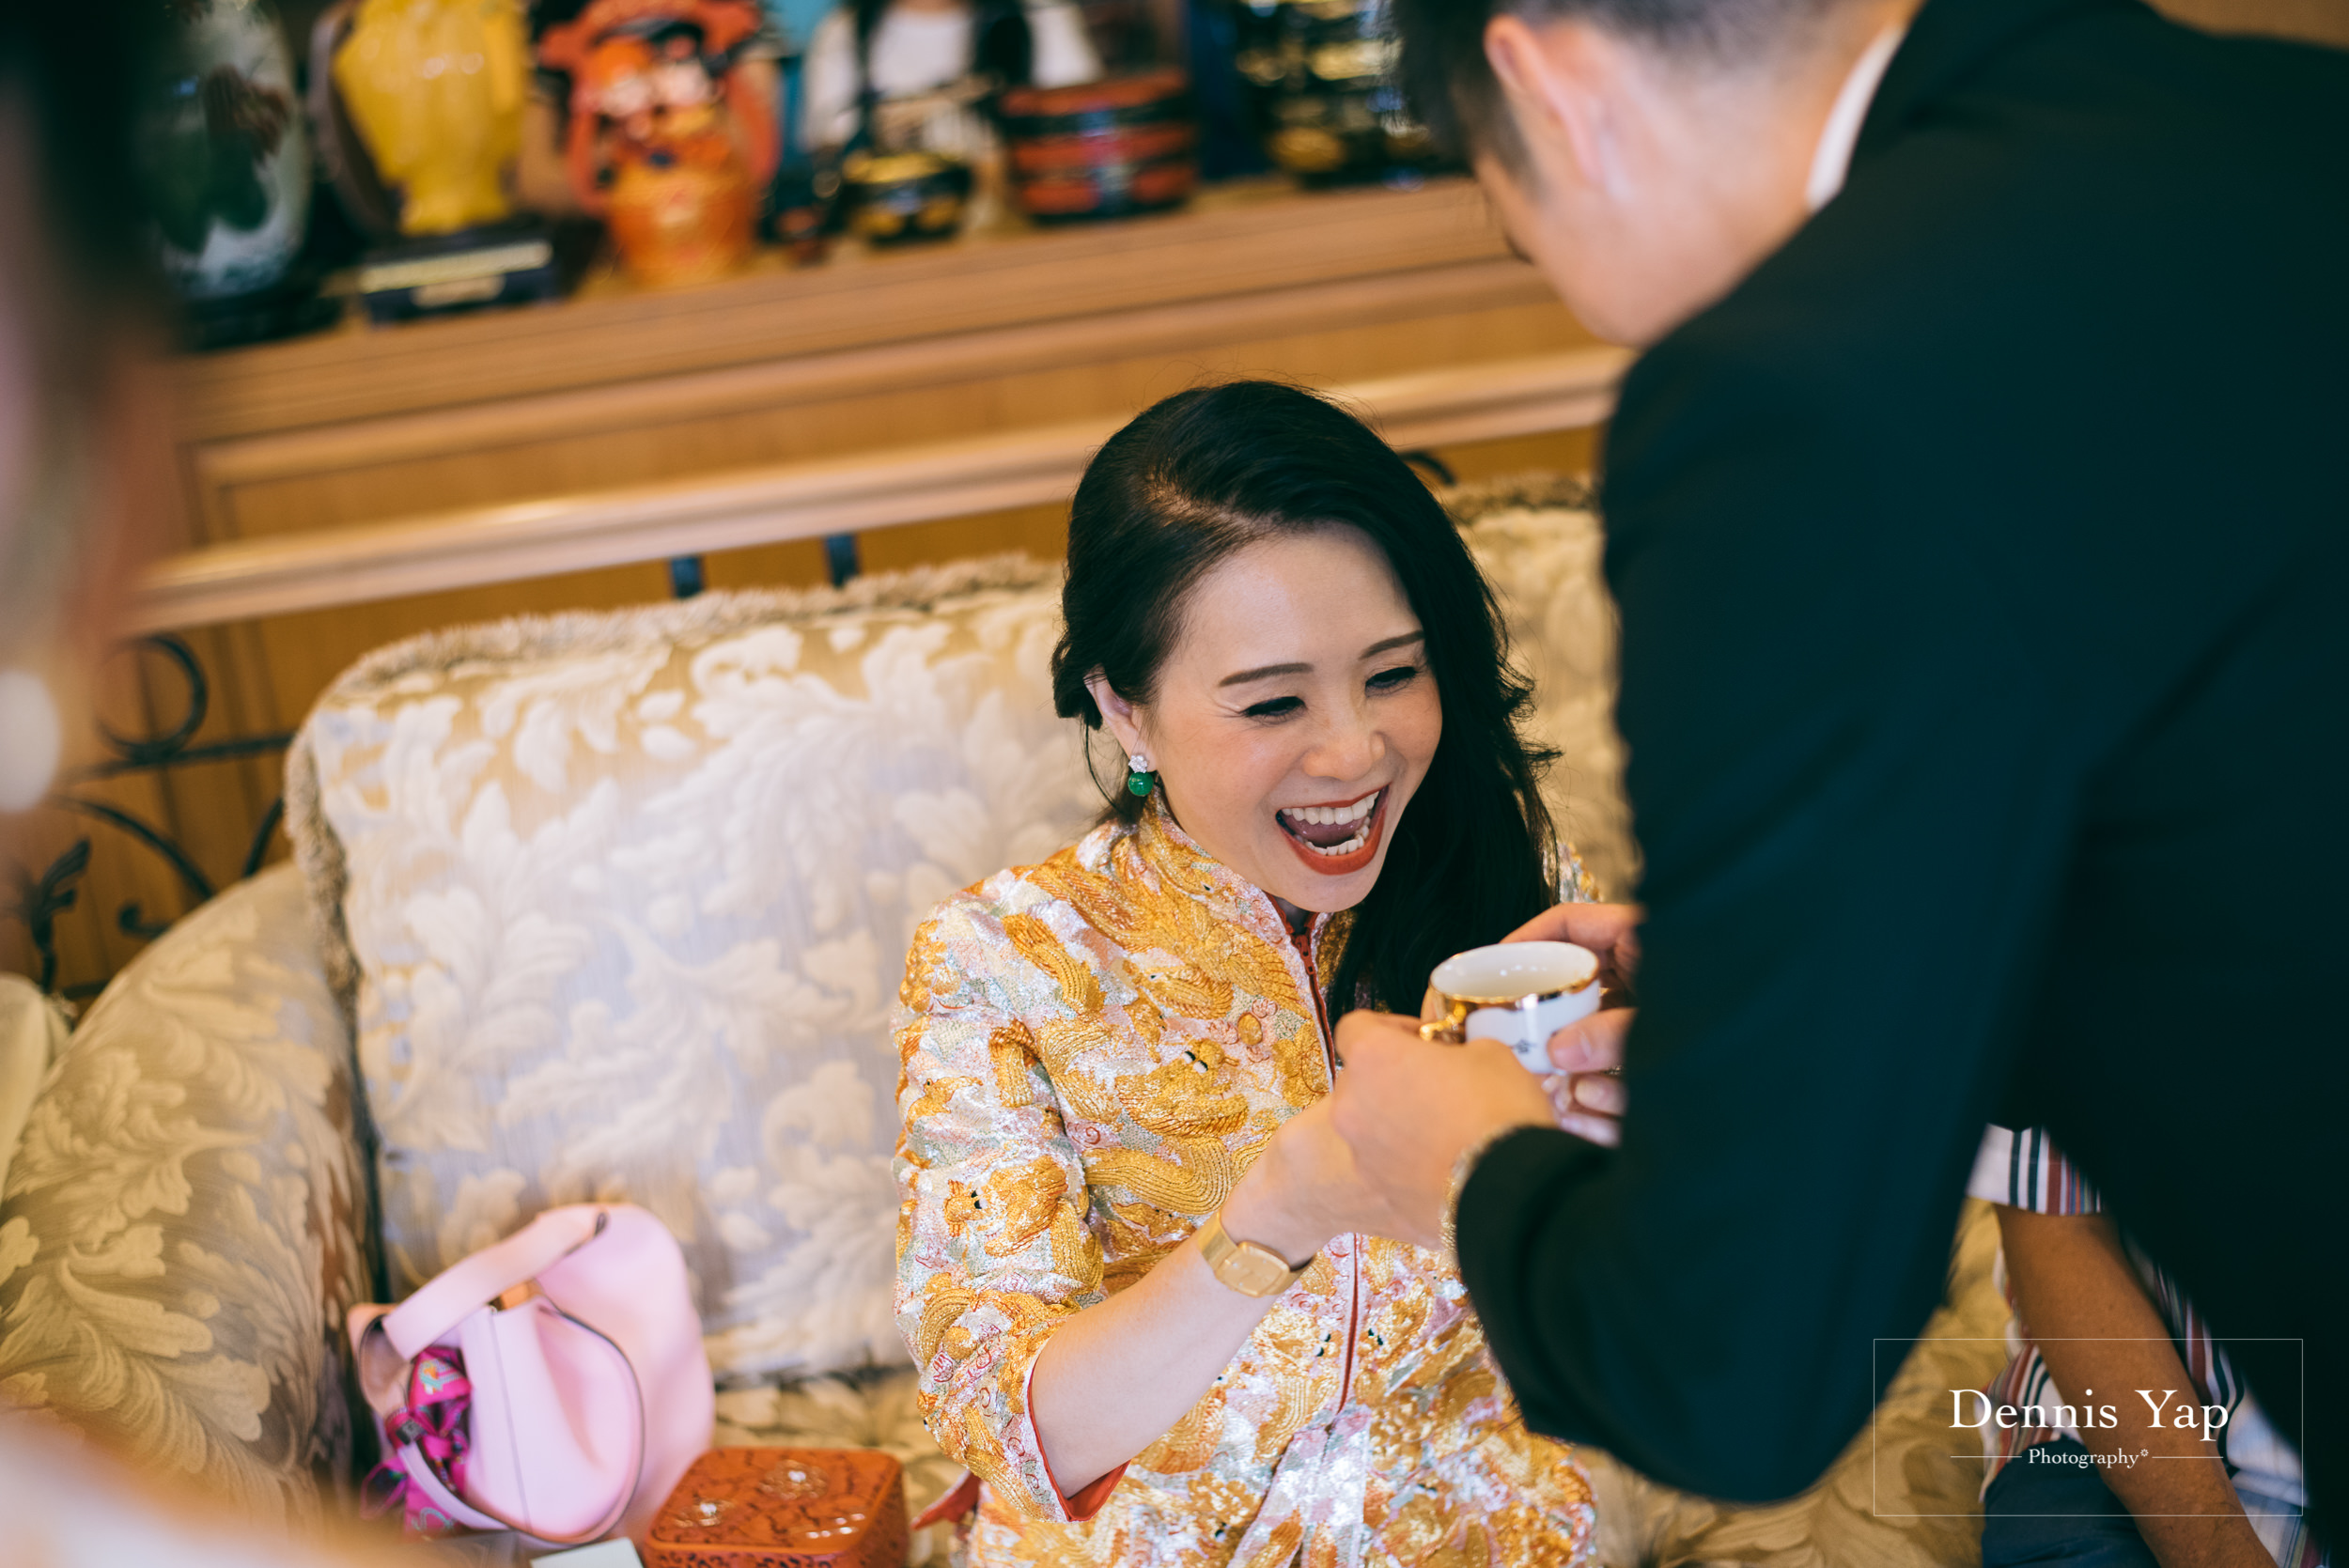 ser siang sze liang wedding day crazy style dennis yap photography malaysia wedding photographer-21.jpg